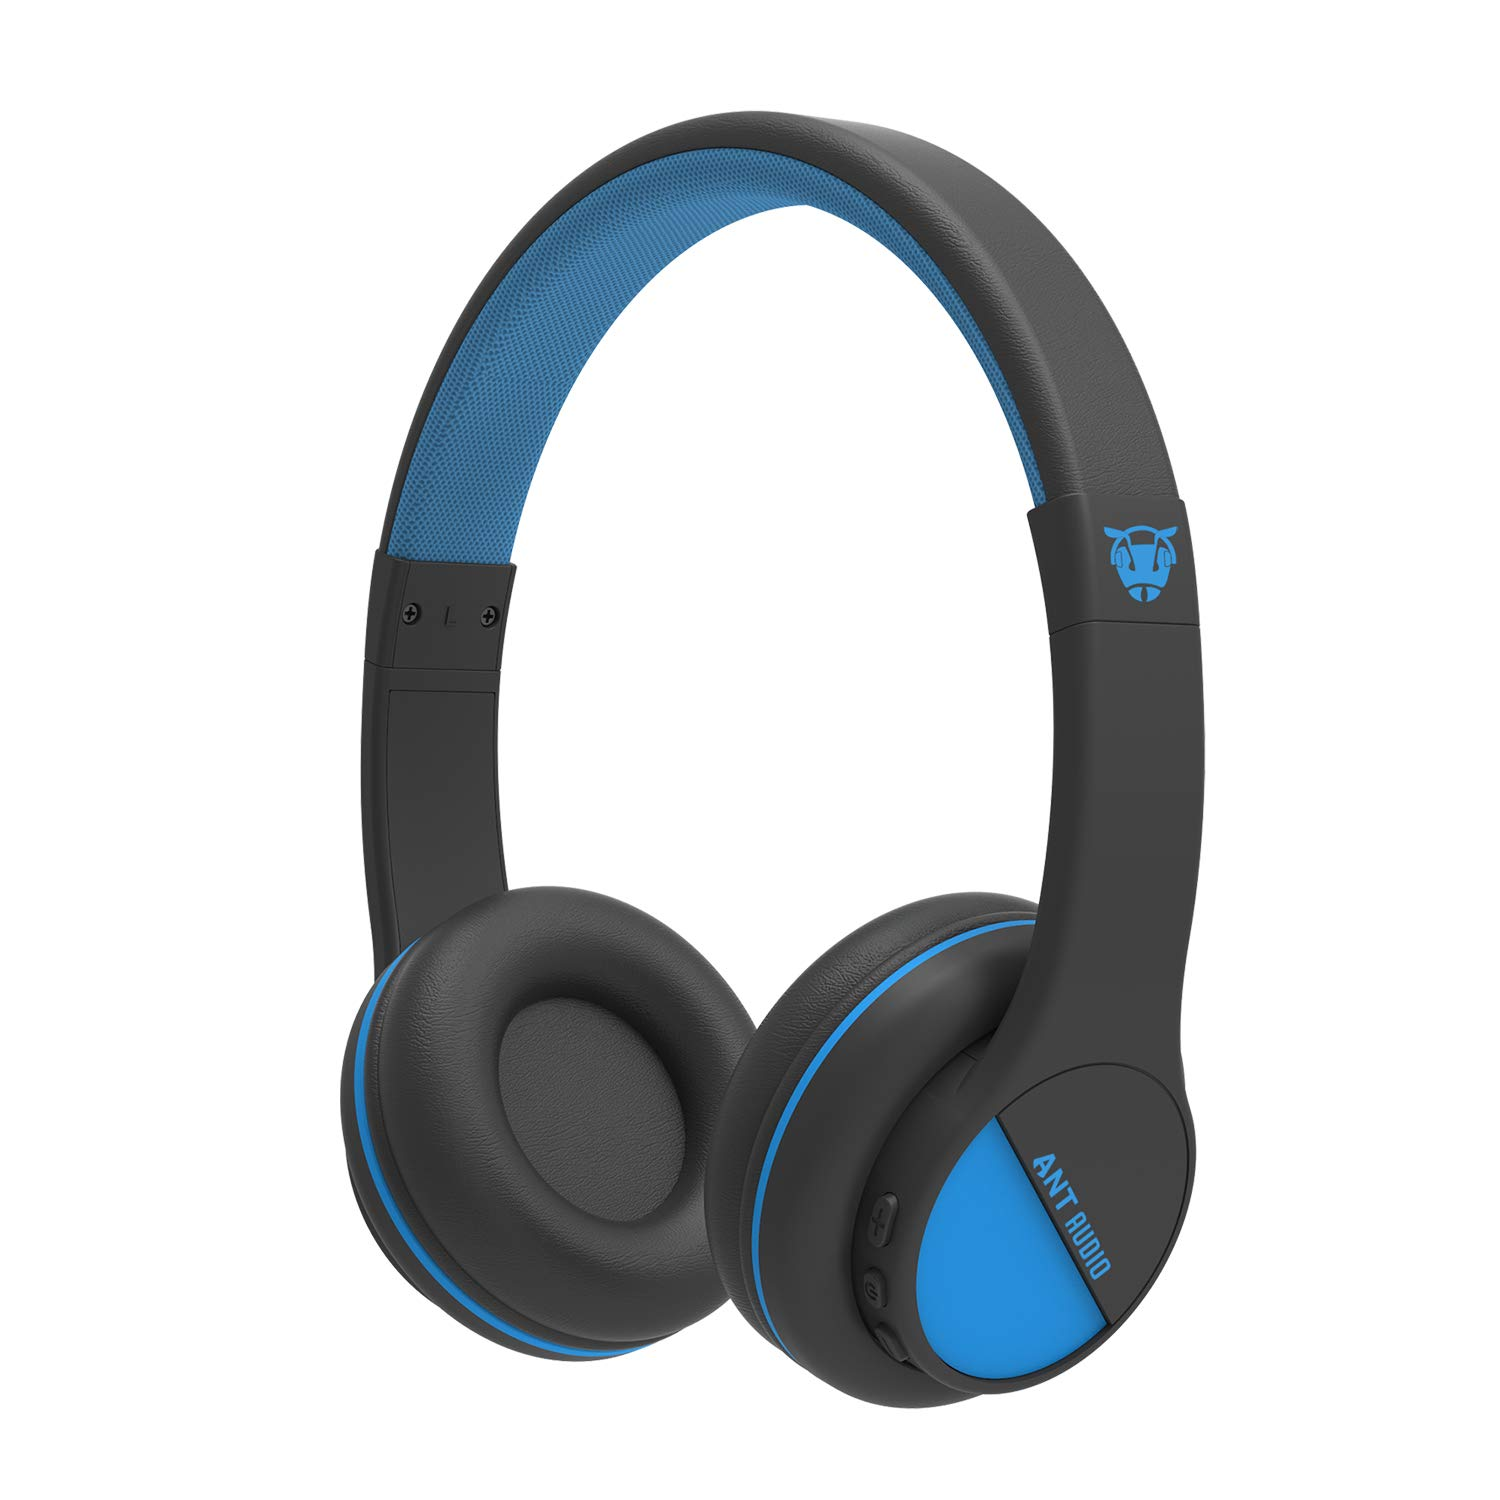 Ant Audio Treble 500 On -Ear HD Bluetooth Headphones with Mic (Black and Blue)